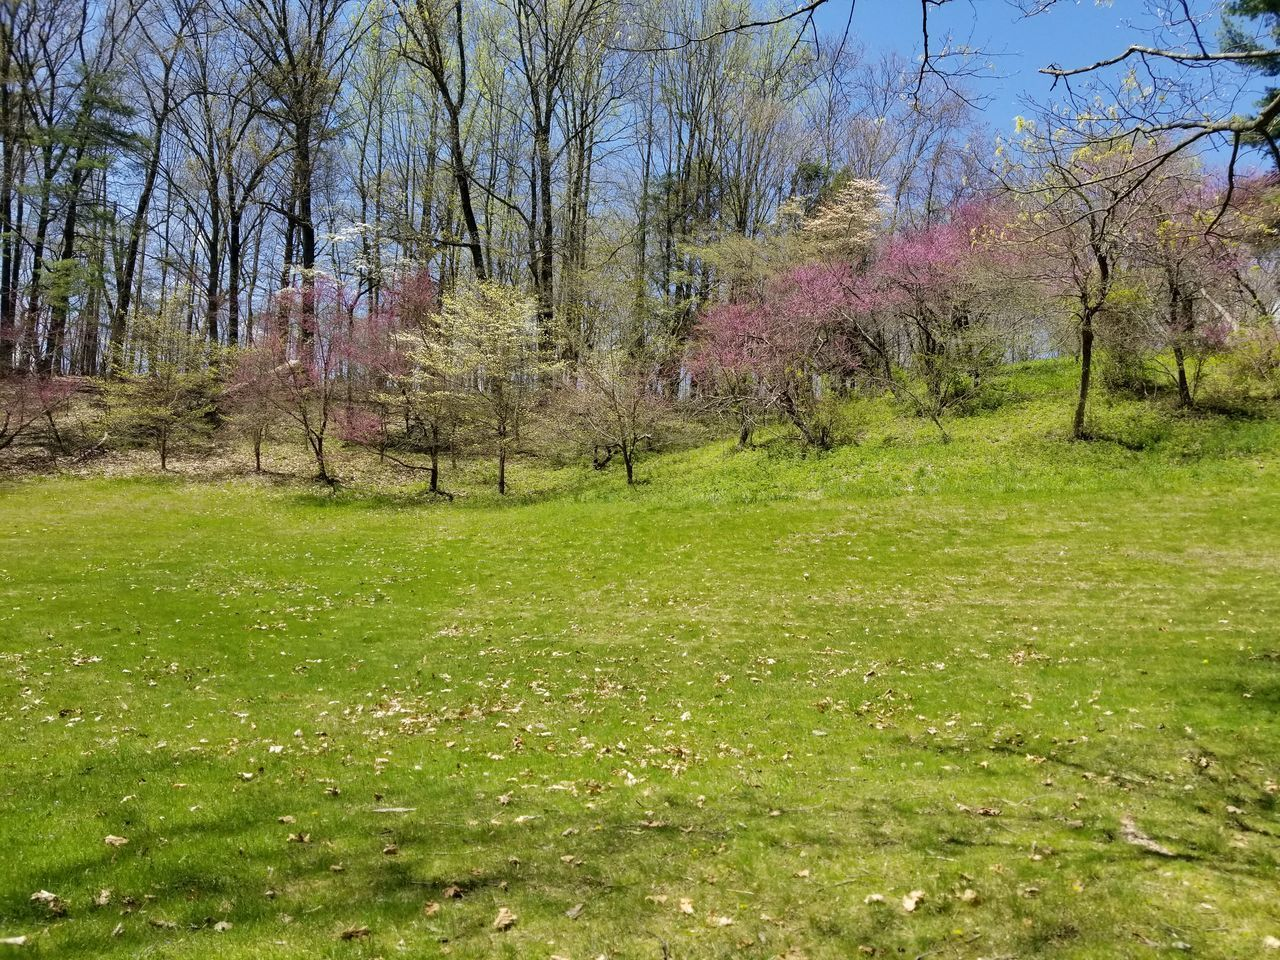 SCENIC VIEW OF GRASSY FIELD AND TREES